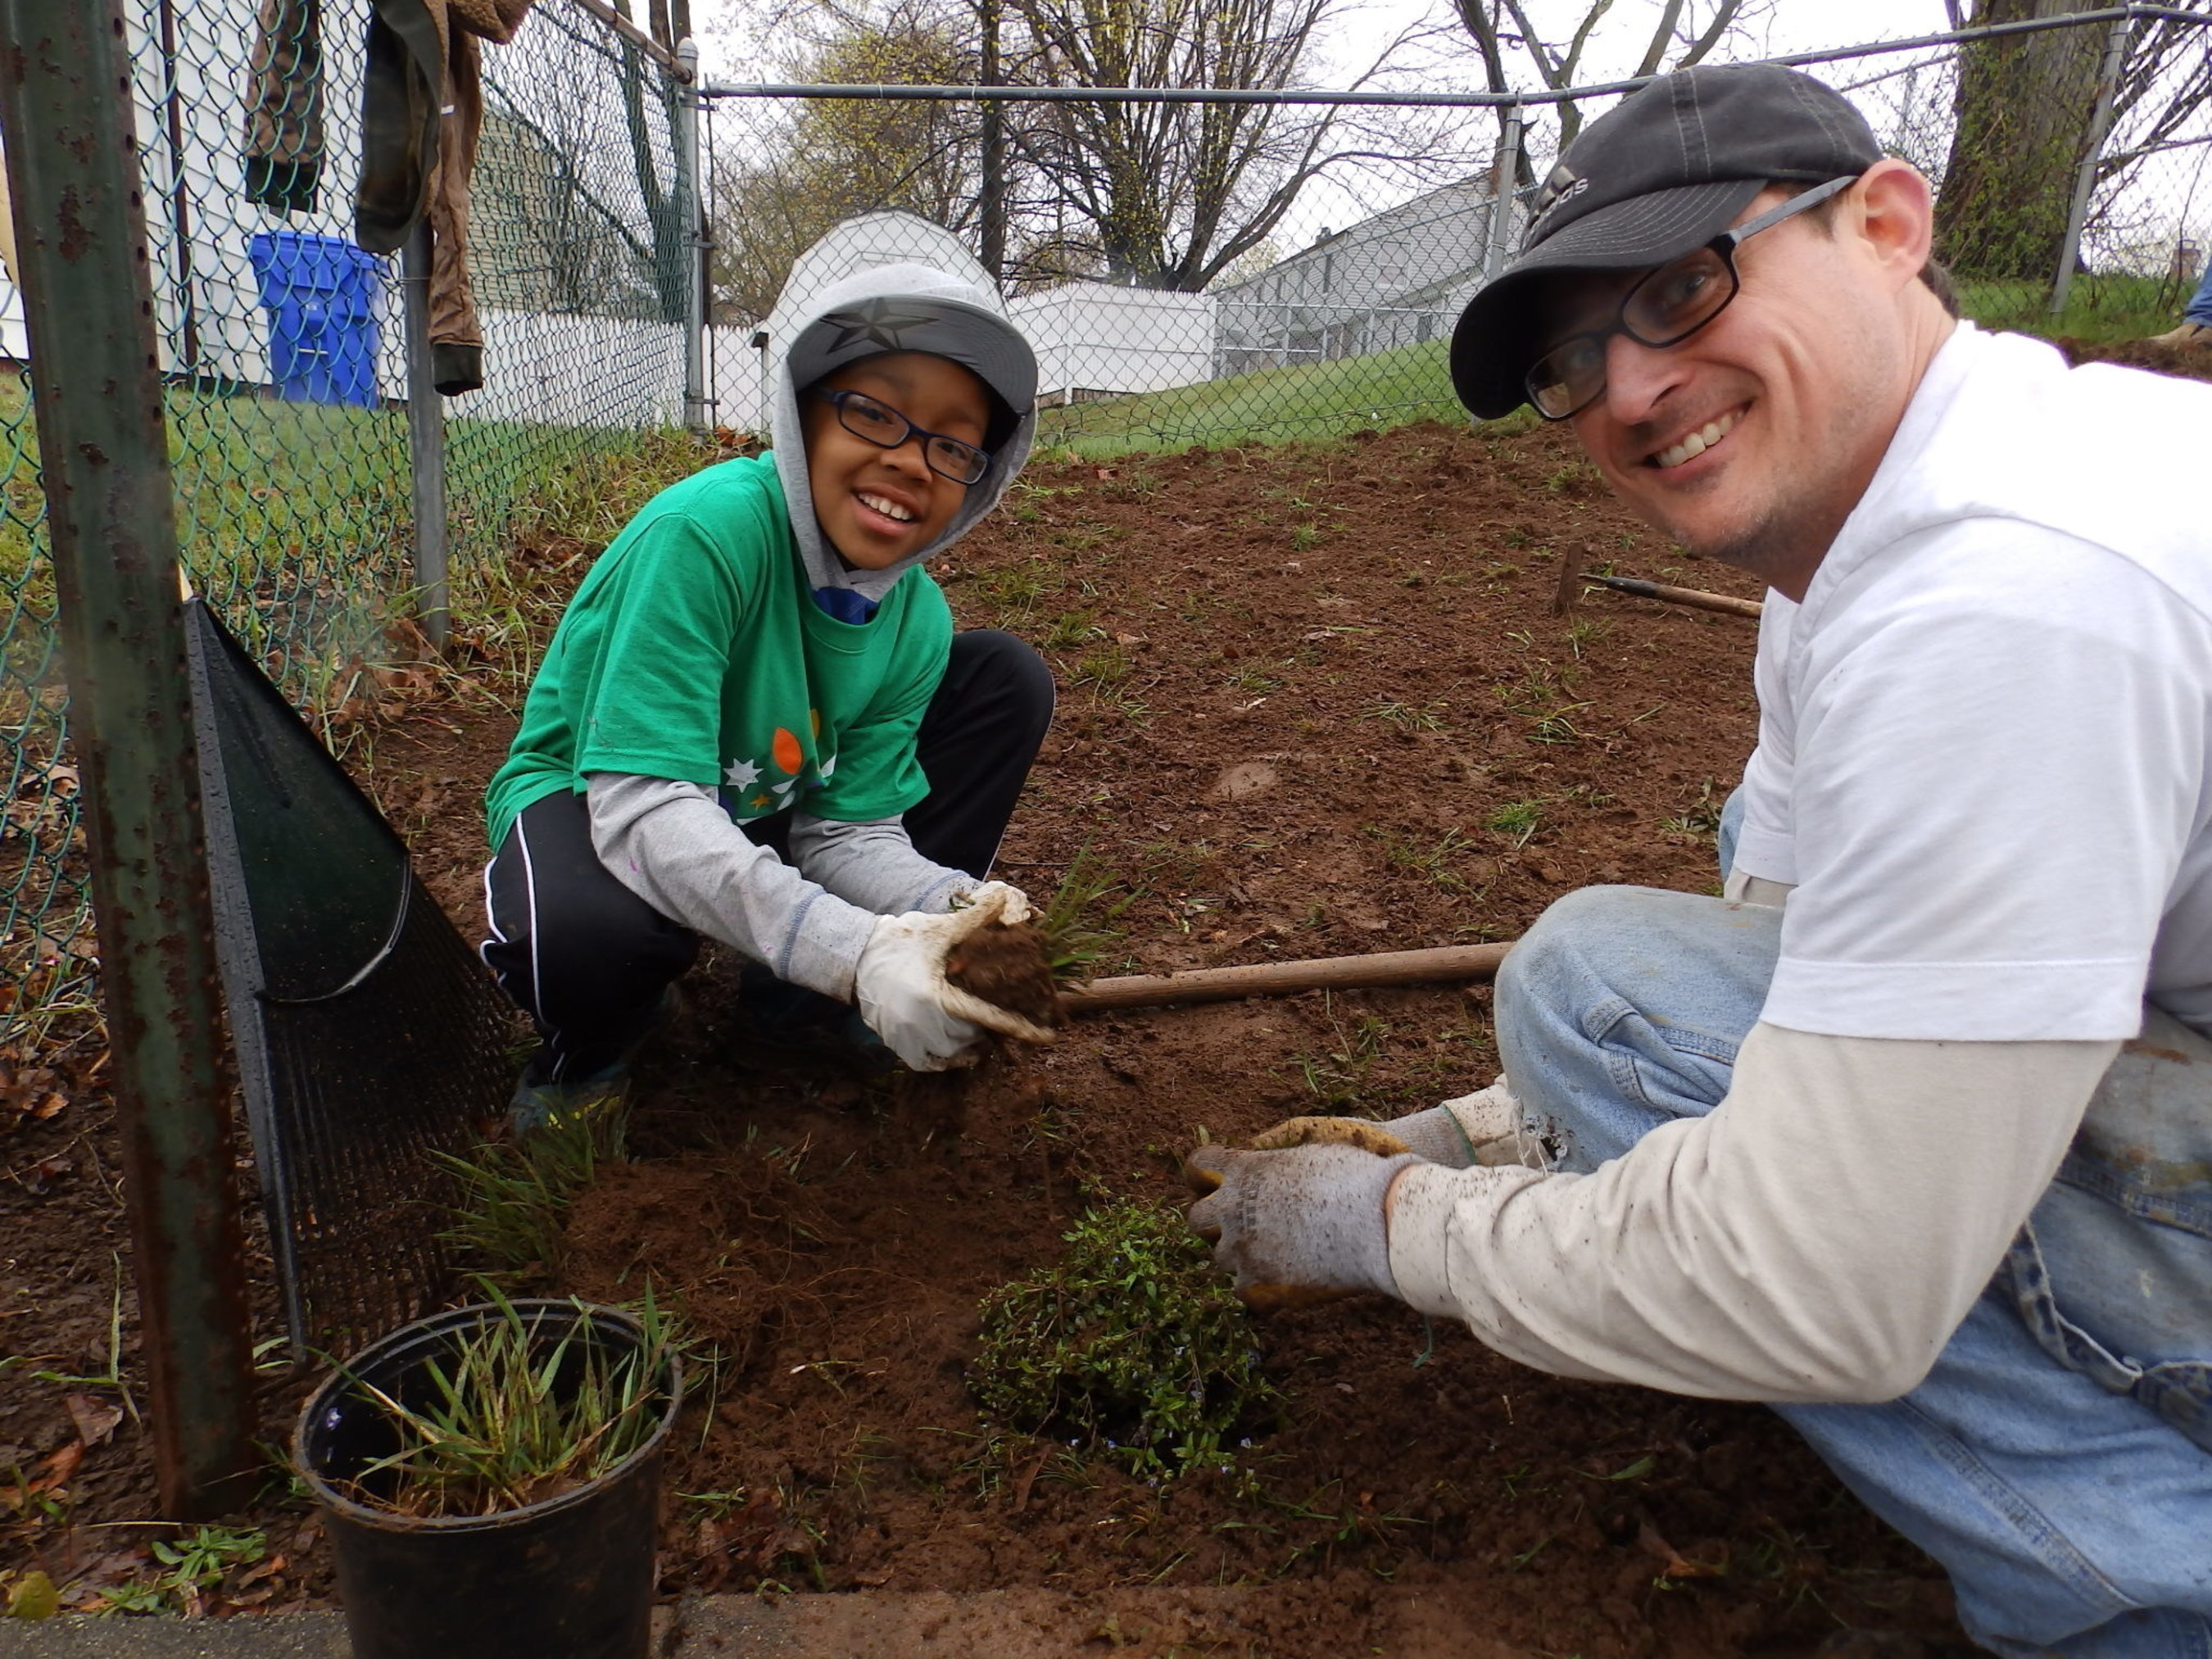 """More than 650 local Comcast NBCUniversal employees and their families, friends and community partners will """"make change happen"""" at nine sites throughout Connecticut on April 25th."""